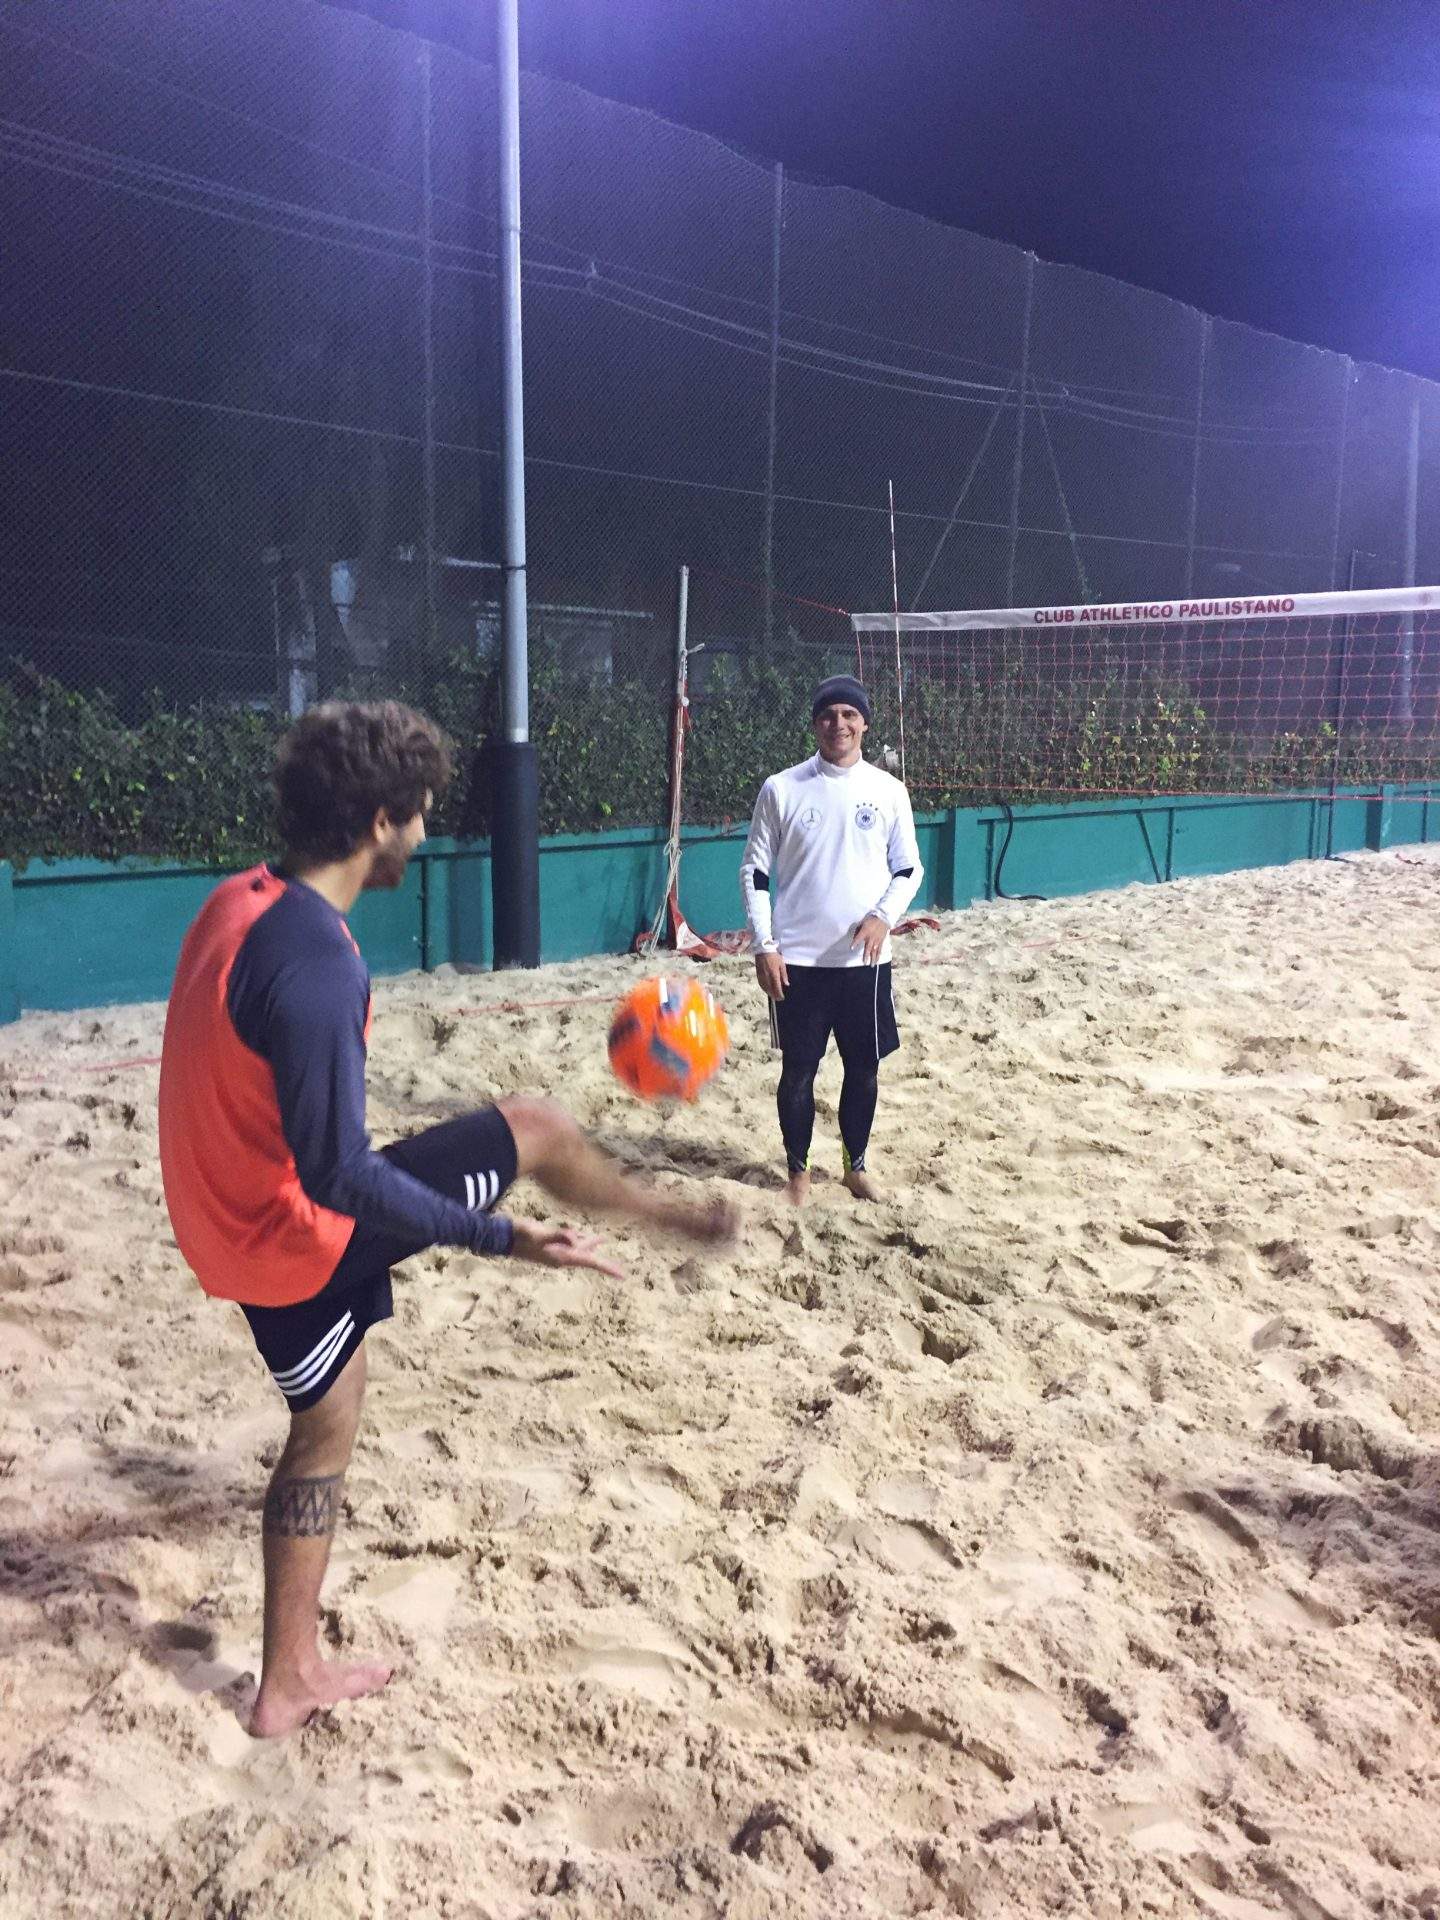 footvolley_teamsport_night_playing_together